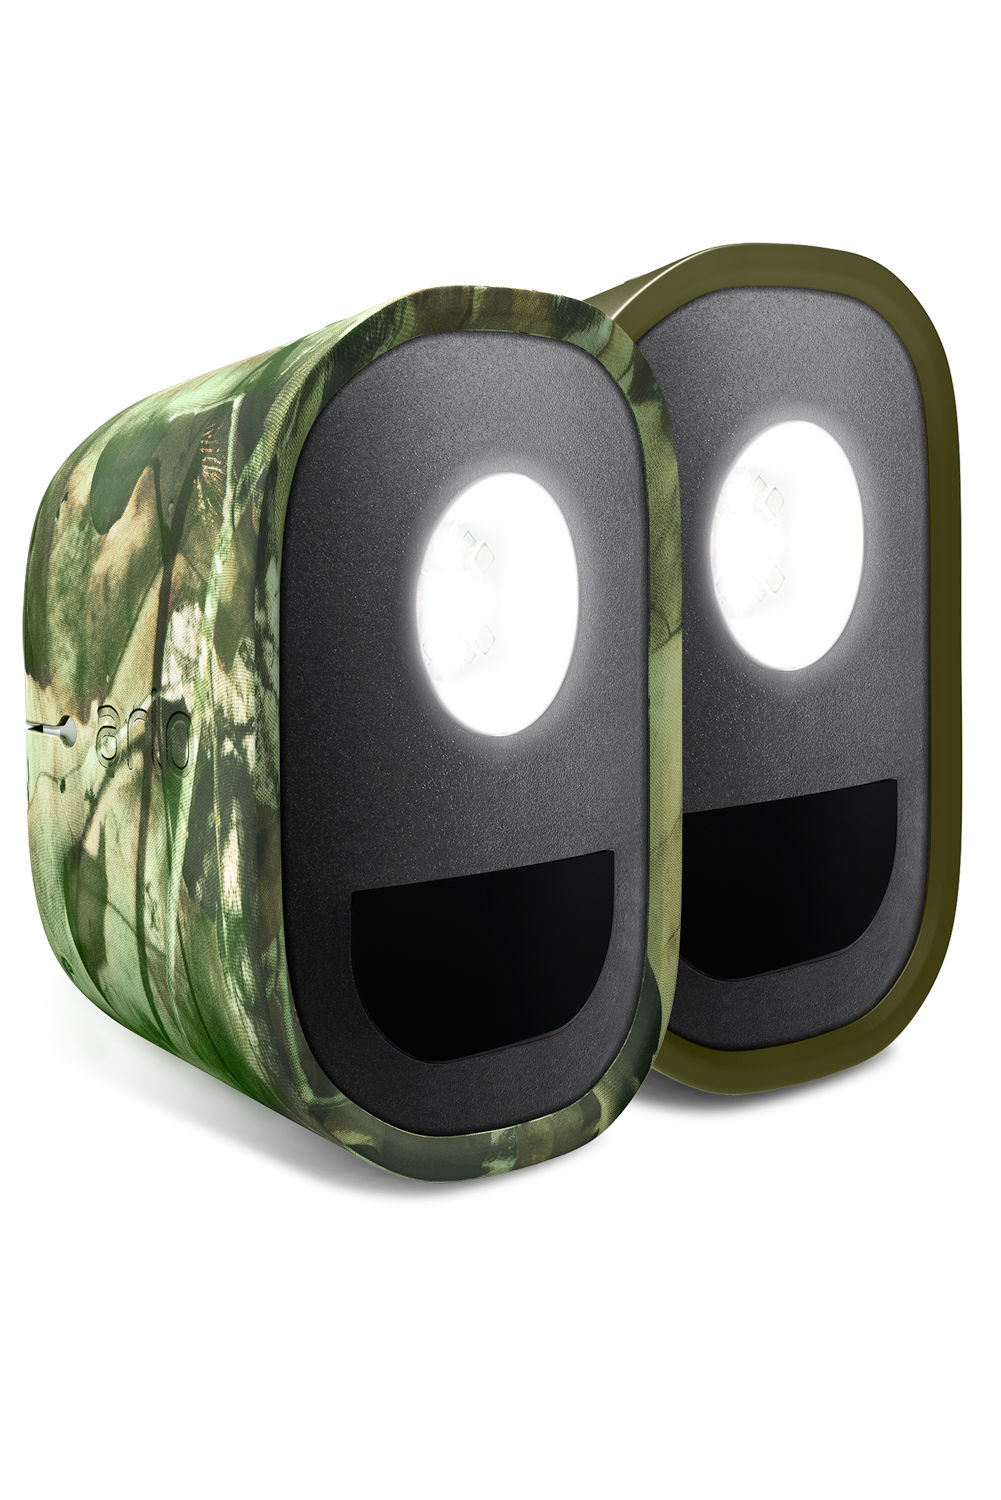 Rechargeable Wireless Security Light Arlo How Can I Install An Outdoor Sensor Have 3 Wires Set Of 2 Skins In Camouflage For Ala1100